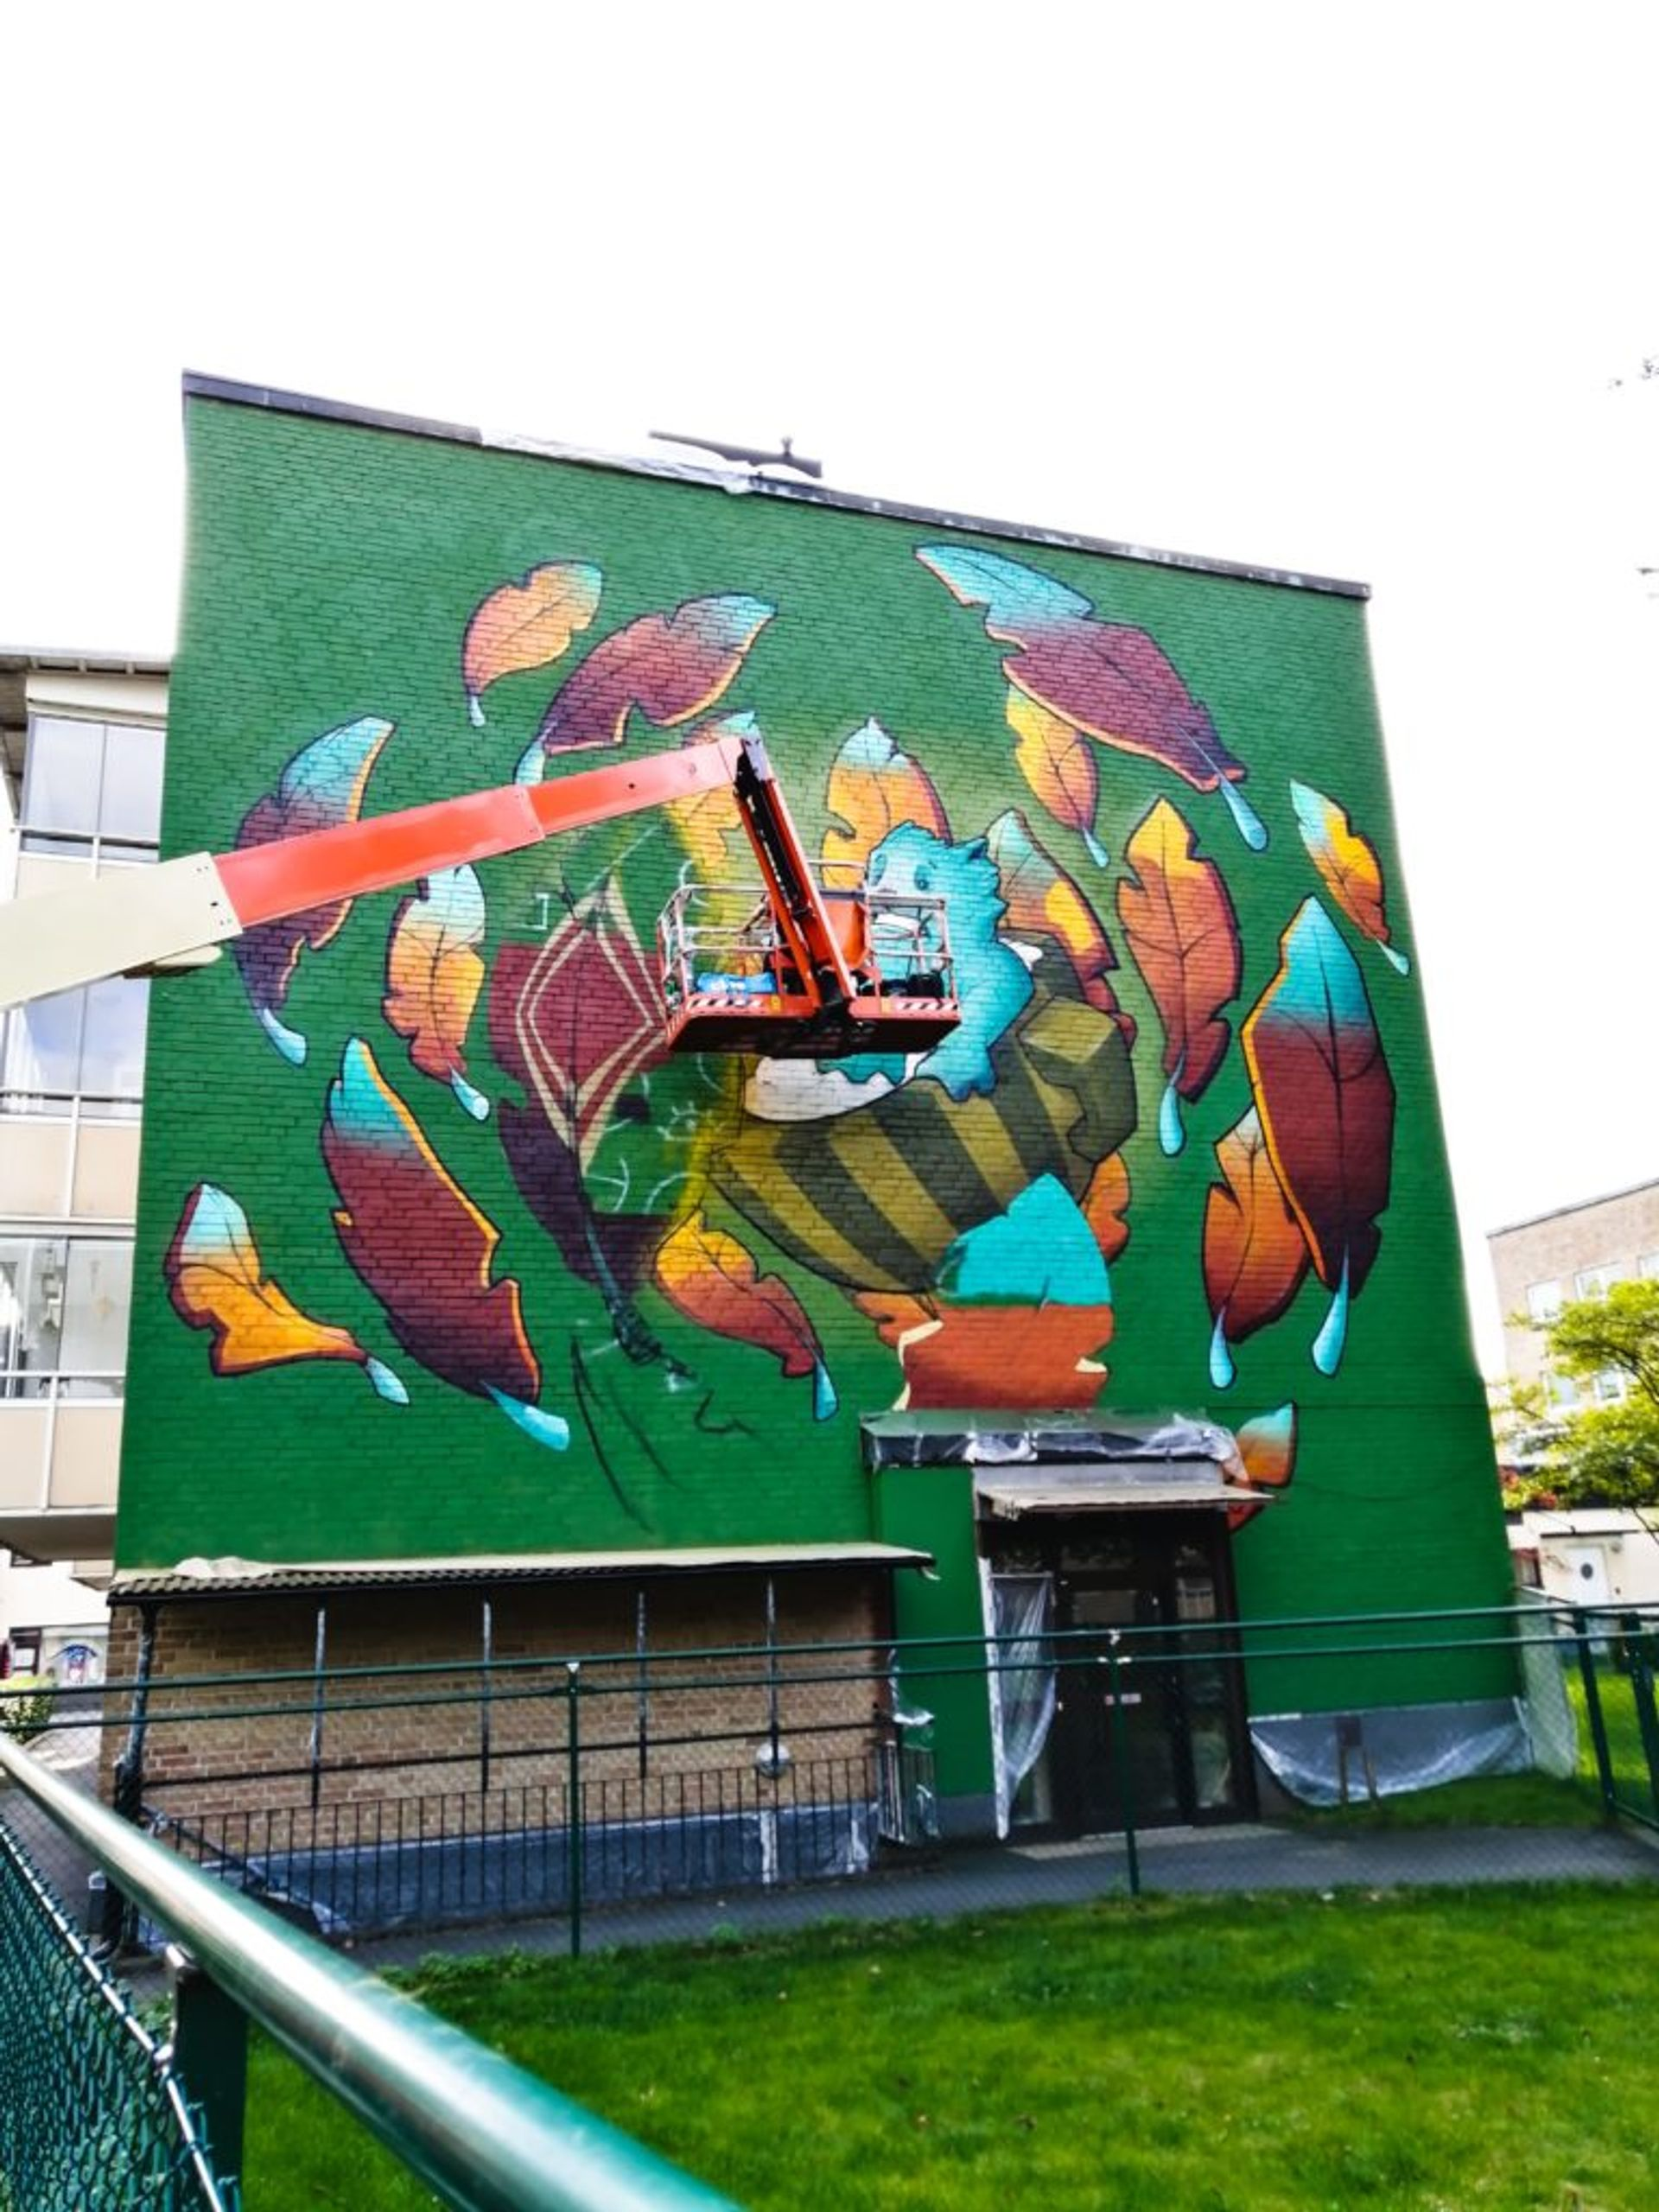 Colourful and animated mural of character riding a teacup surrounded by glowing leaves on the side of a building.